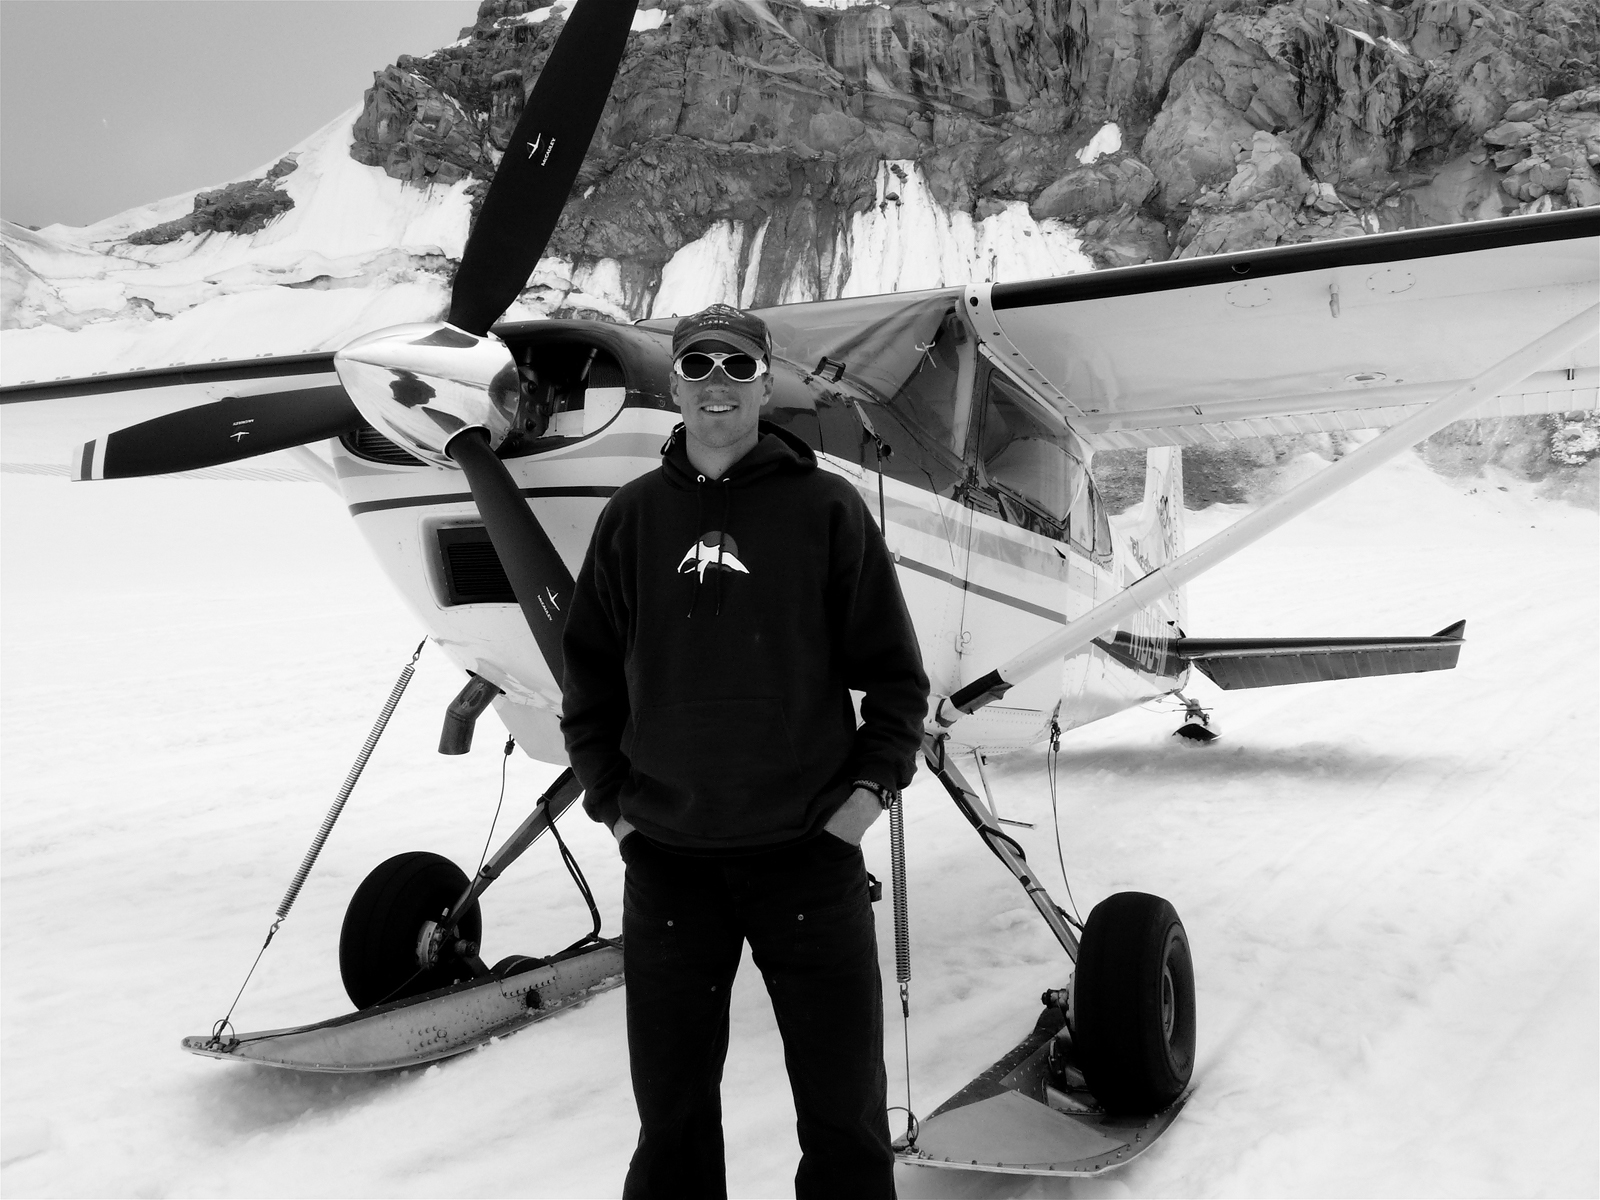 Man_Pilot_Flying_Glacier_Alaska